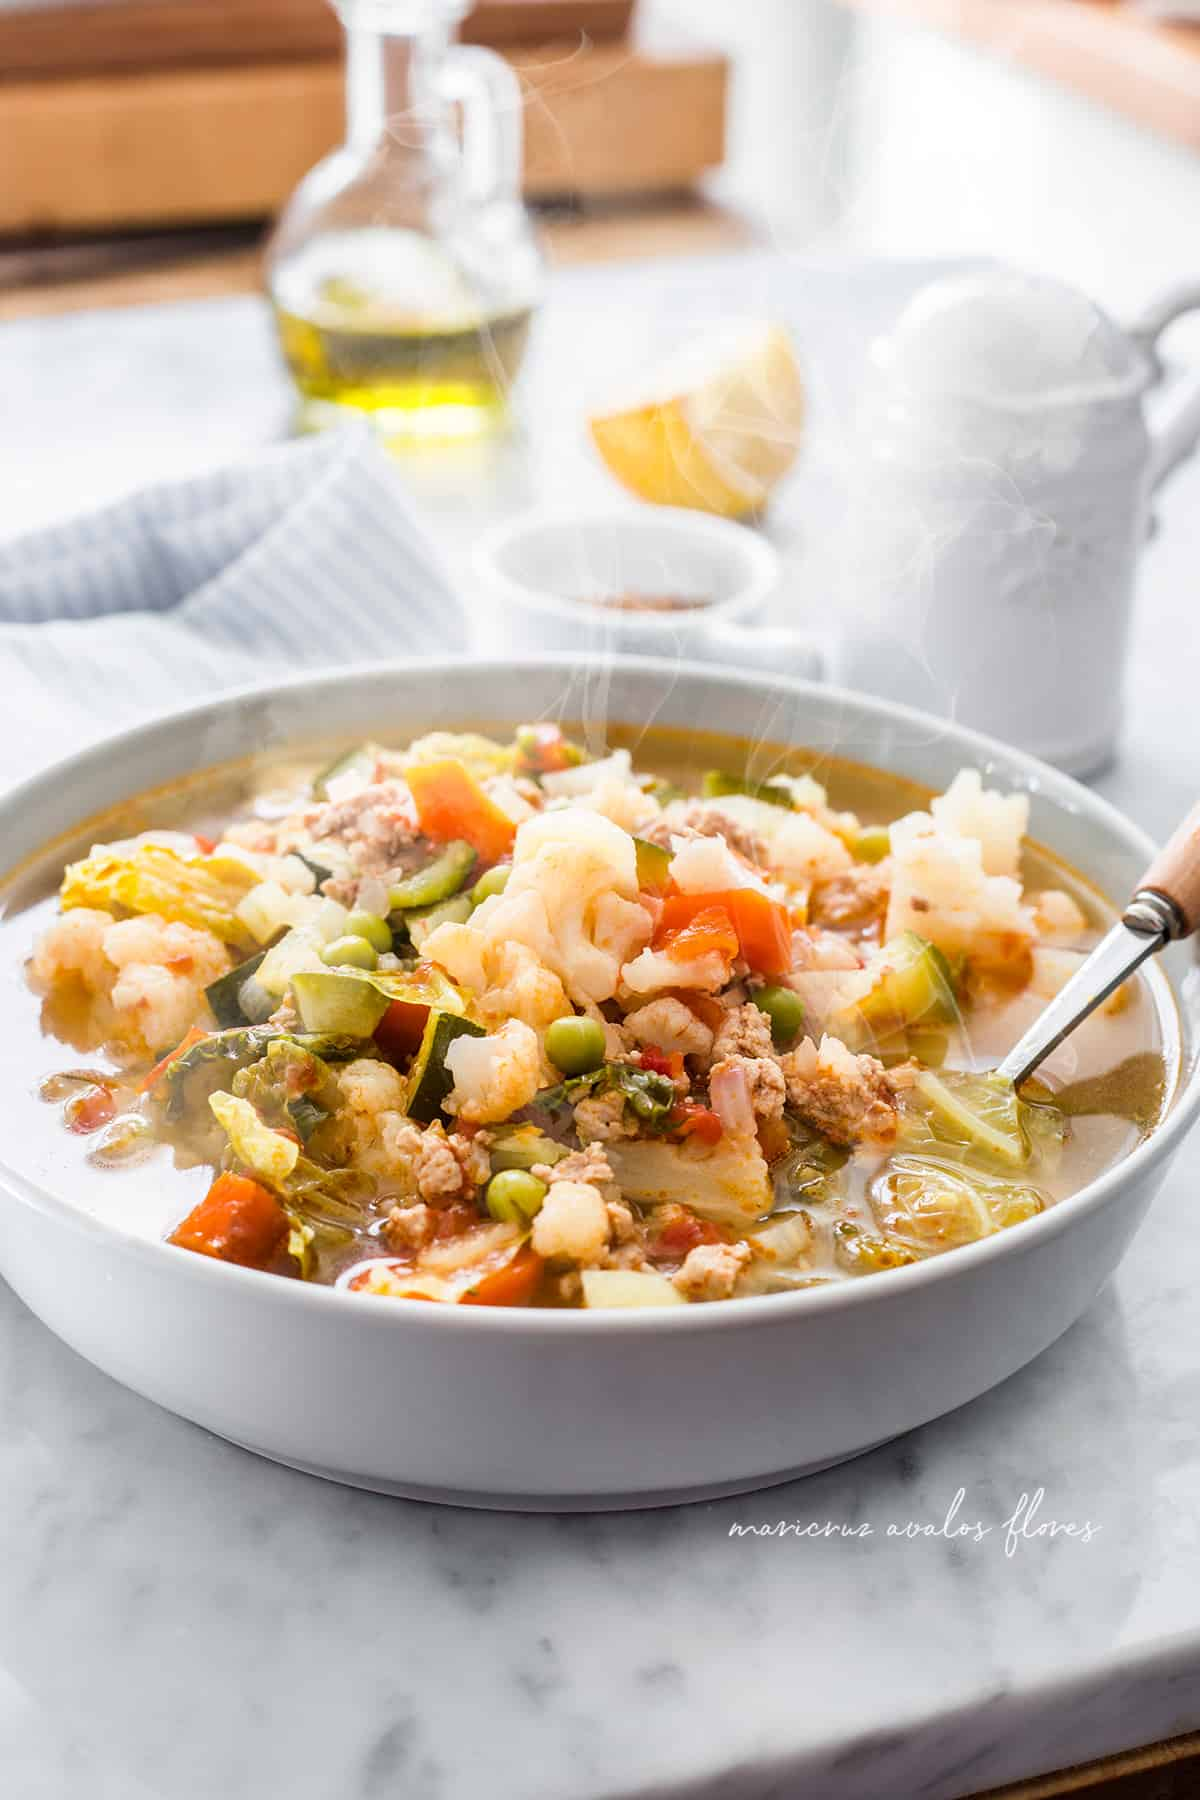 Minestrone soup with sausage served on a deep plate.